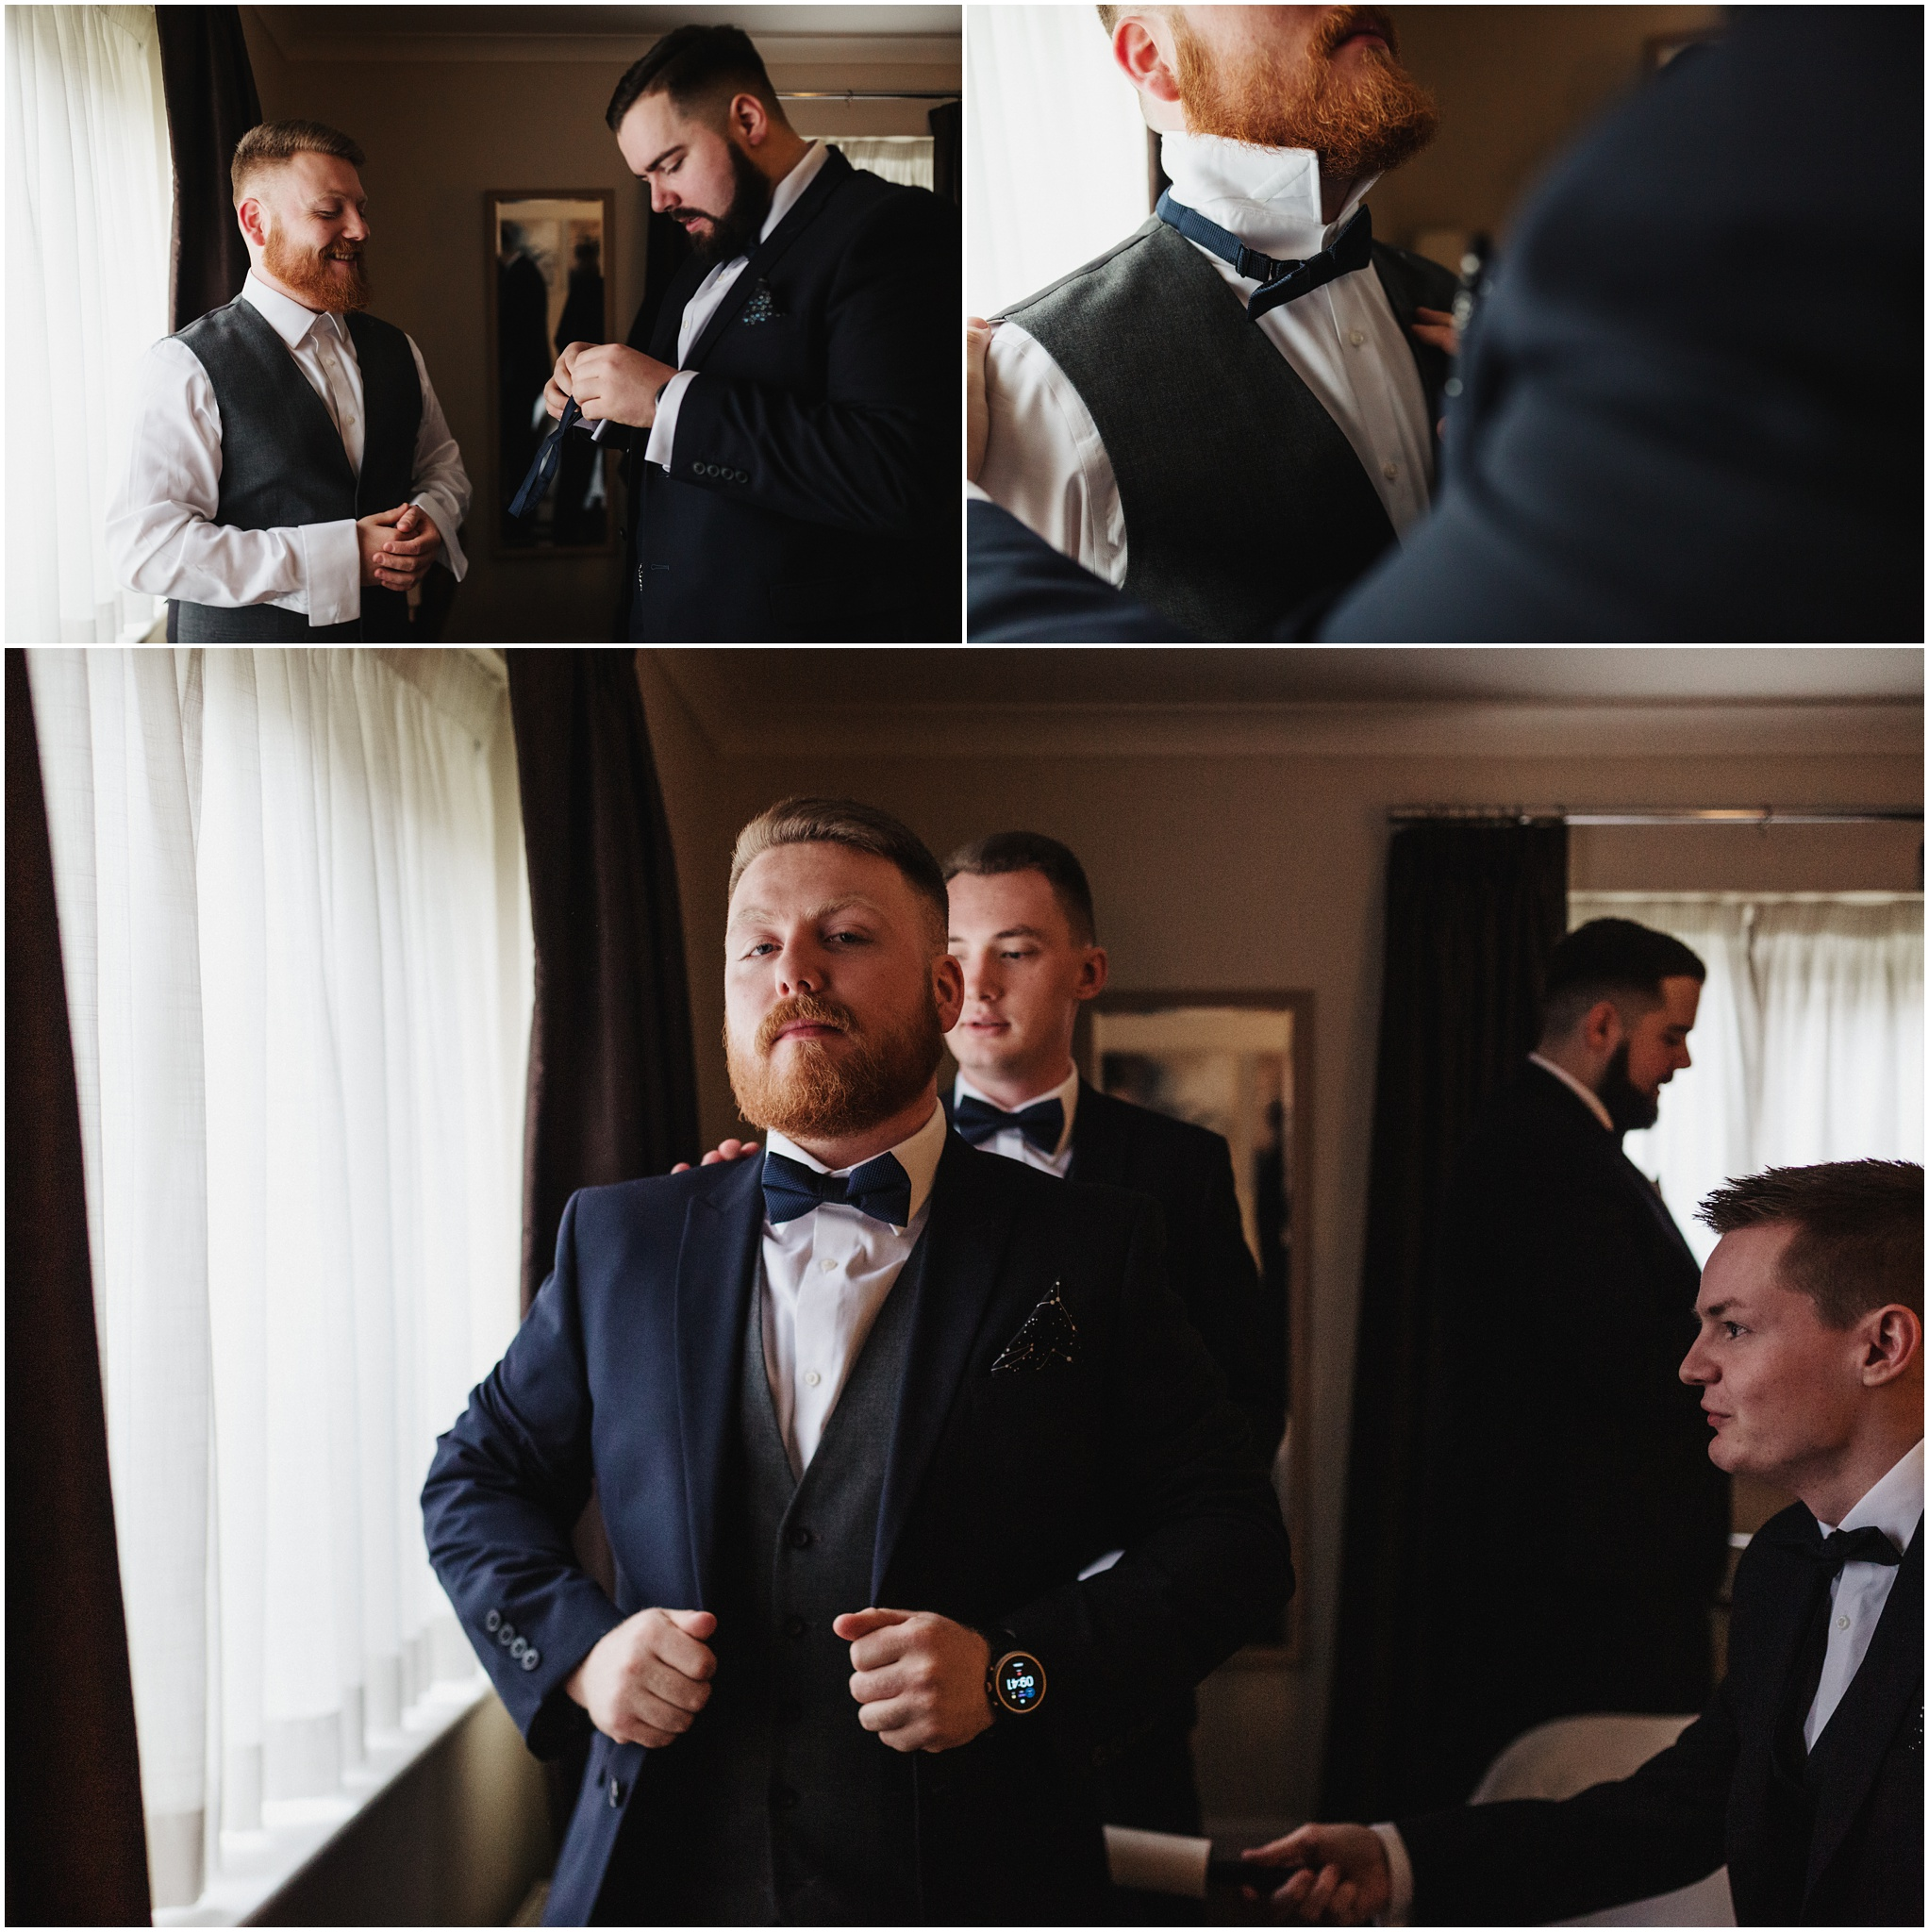 The groomsmen getting ready in their hotel room next to the window